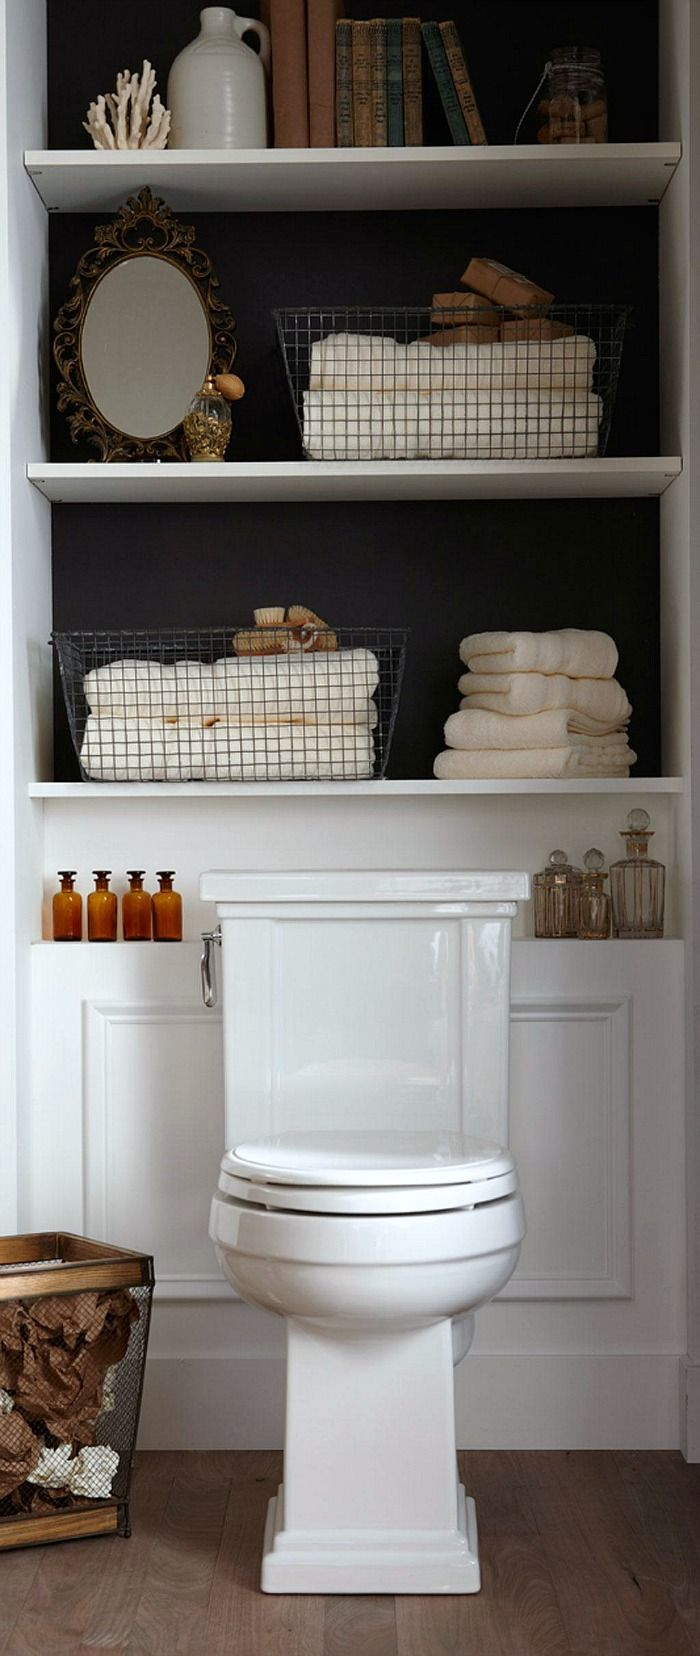 Decorating A Small Bathroom Ideas Inspiration For Making The